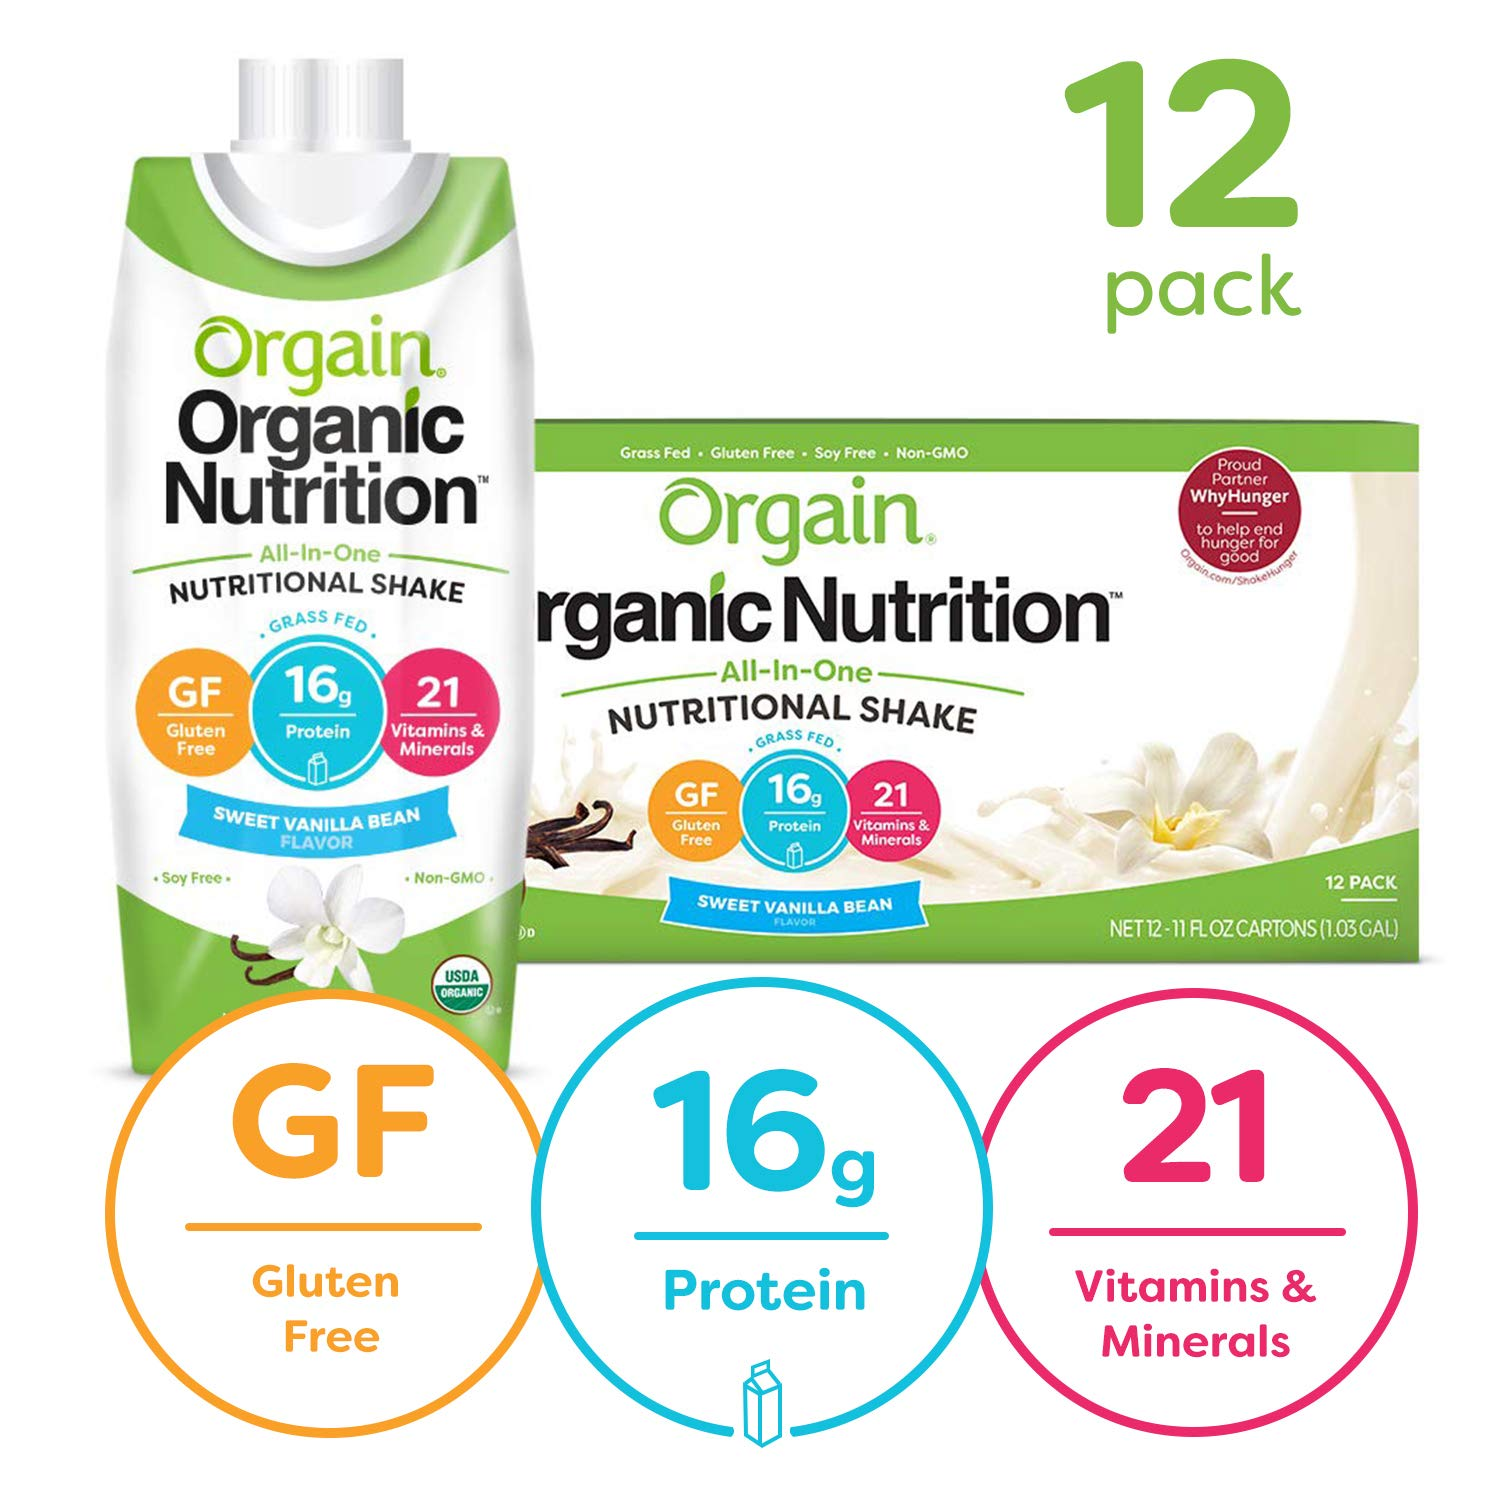 Orgain Organic Nutritional Shake, Sweet Vanilla Bean - Meal Replacement, 16g Protein, 21 Vitamins & Minerals, Gluten Free, Soy Free, Kosher, Non-GMO, 11 Ounce, 12 Count (Packaging May Vary)